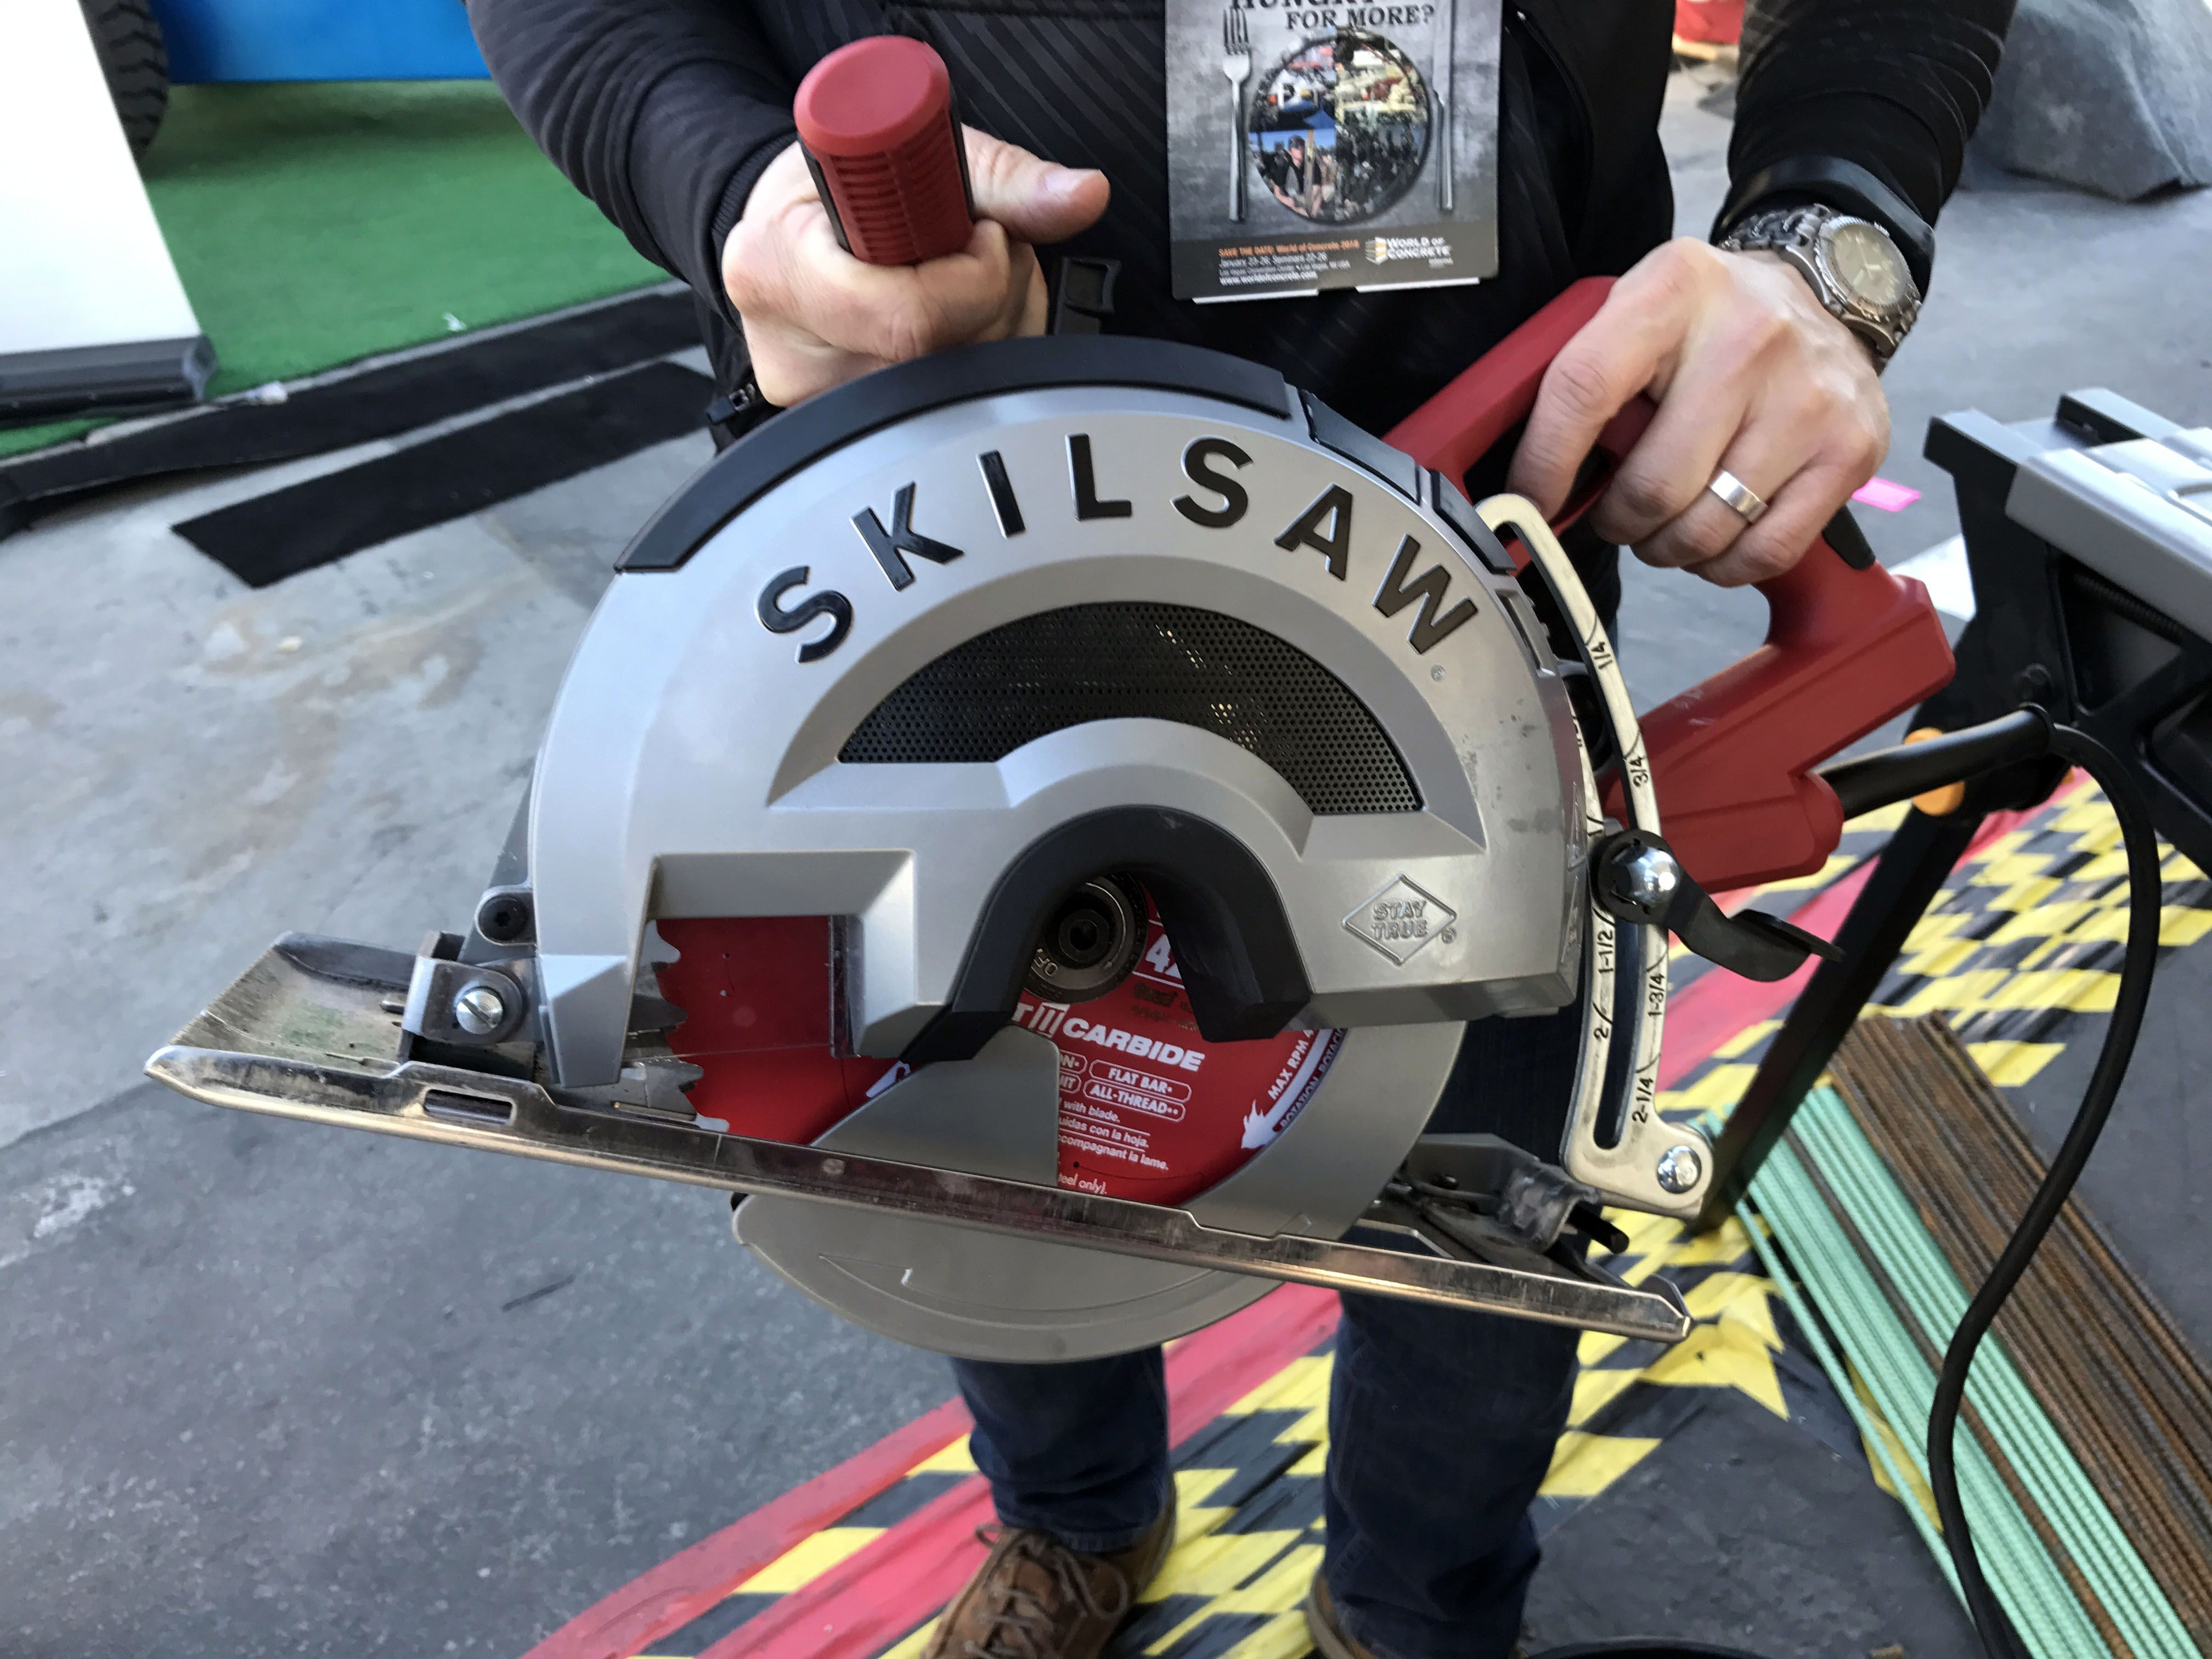 skilsaw outlaw